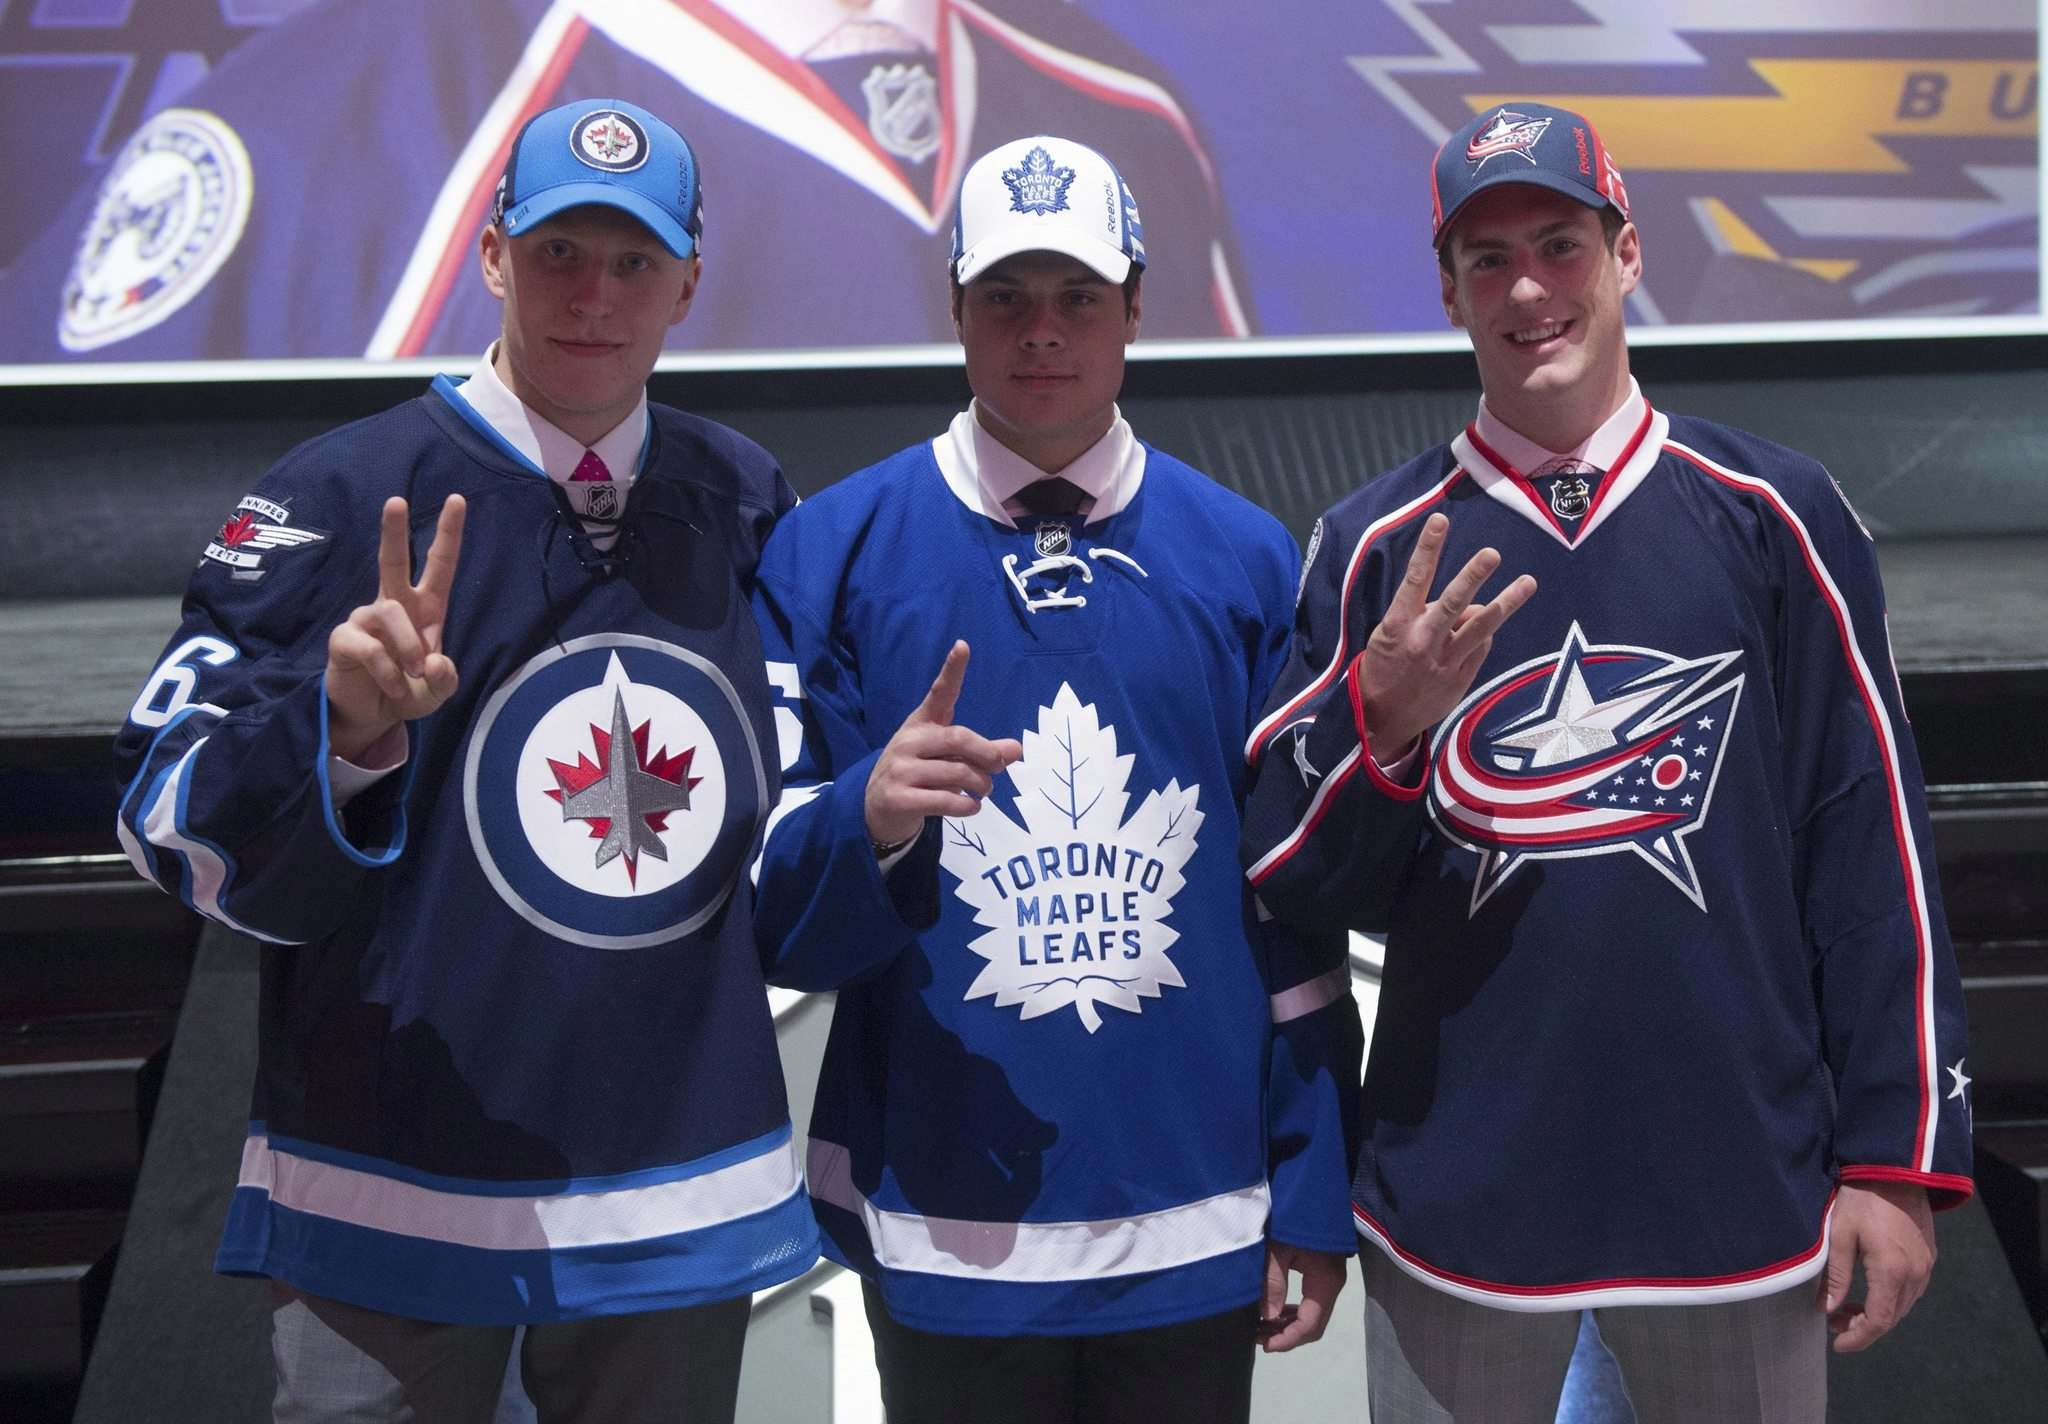 The Jets are bidding to make Winnipeg the host of the NHL entry draft in either 2020 or 2021, with the goal of hosting the event at a newly opened True North Square.